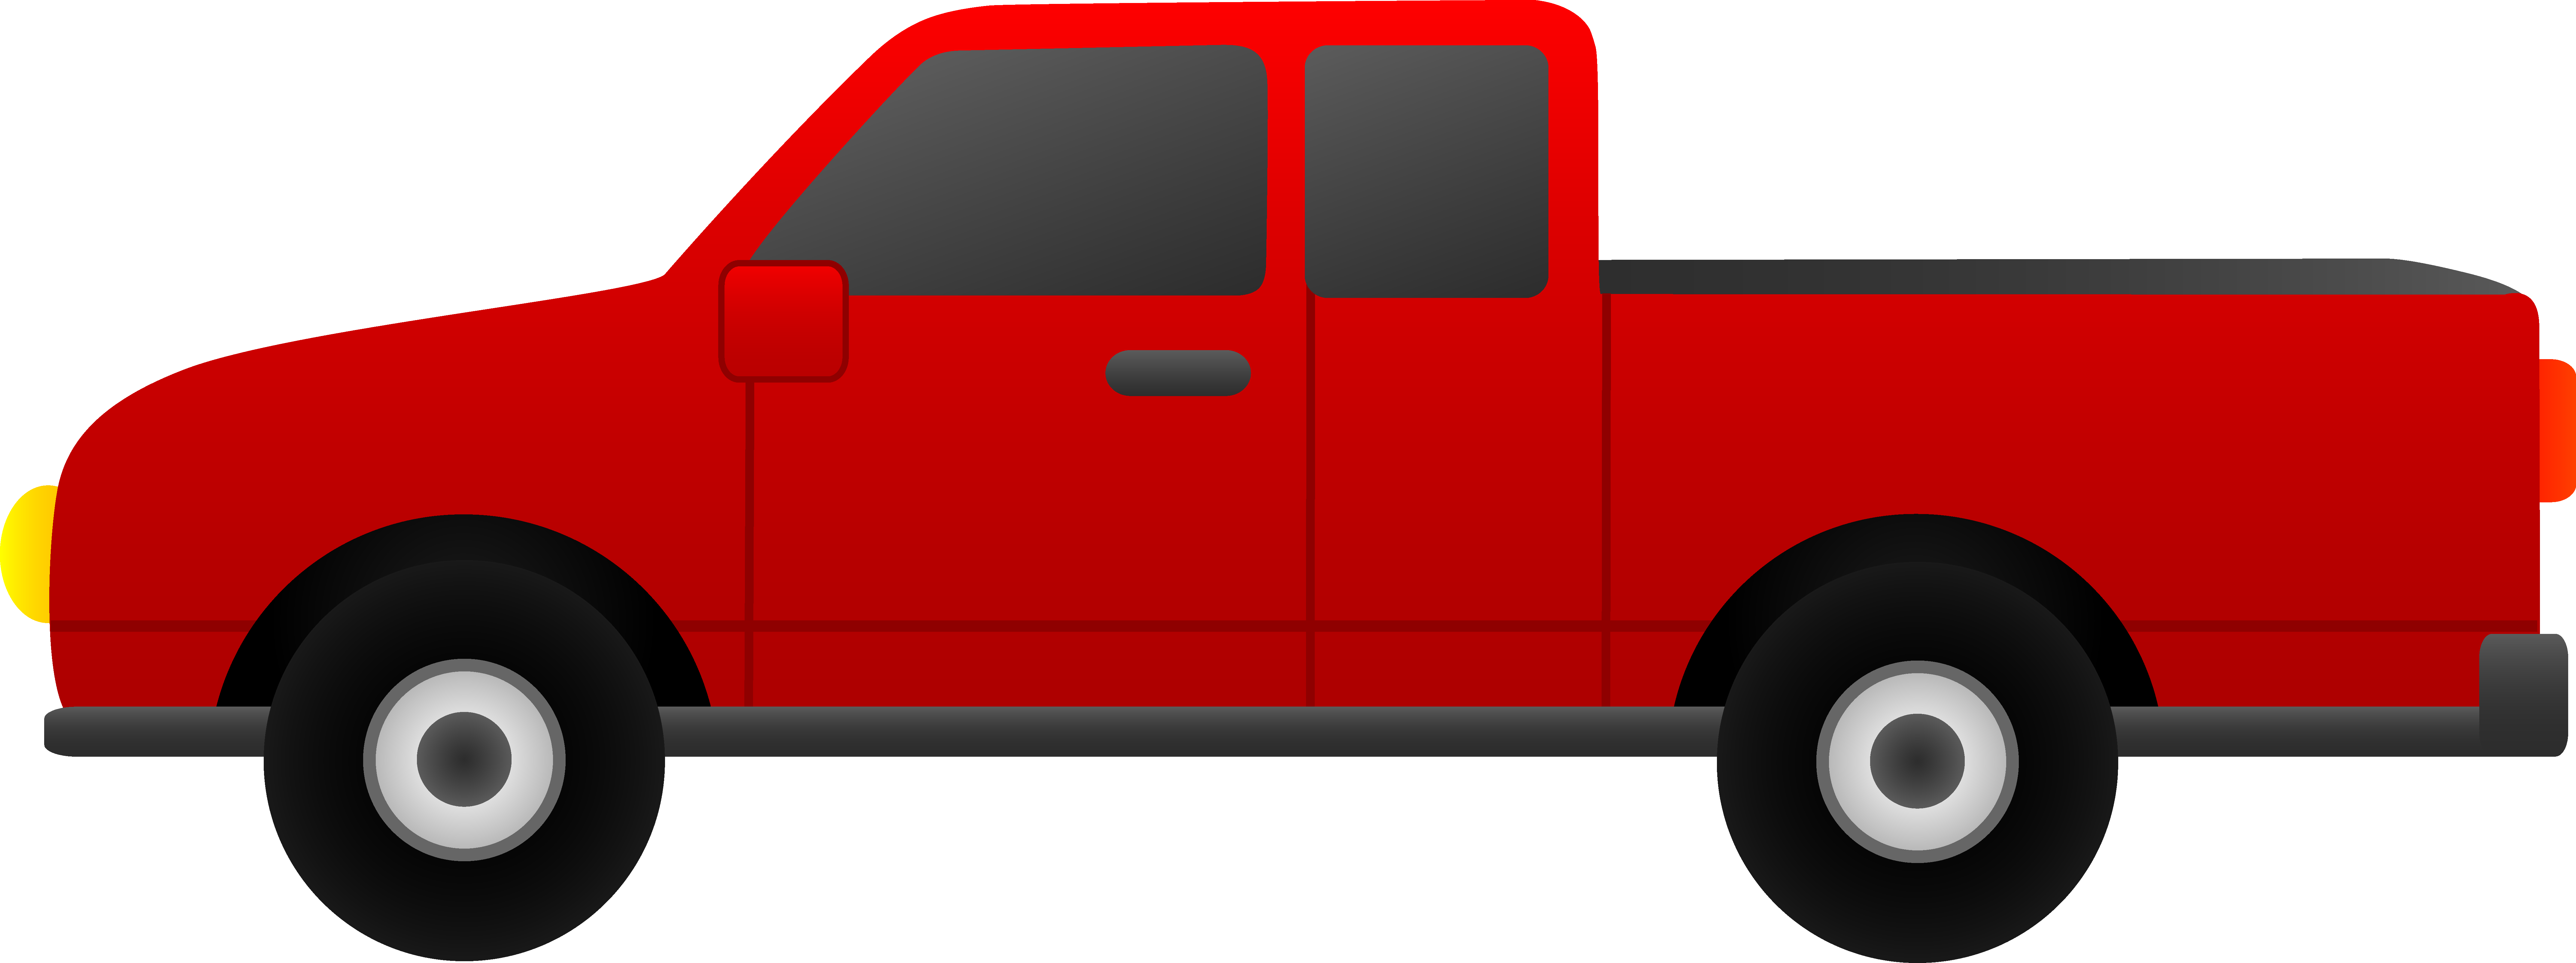 delivery truck clipart images - photo #25